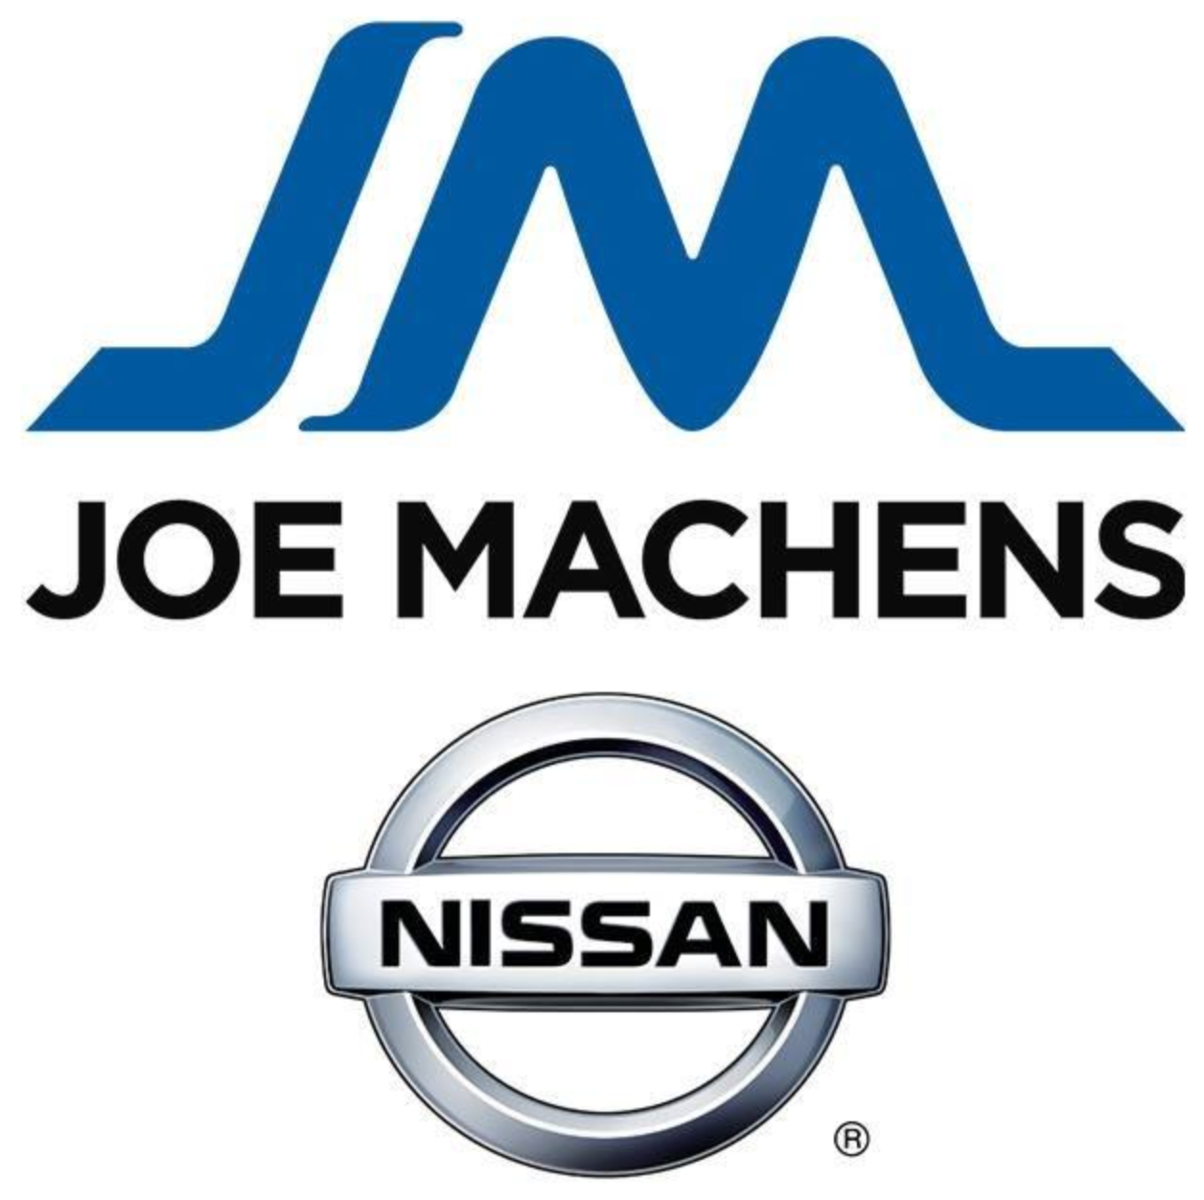 Nissan Columbia Mo >> Joe Machens Nissan - Columbia, MO: Read Consumer reviews ...